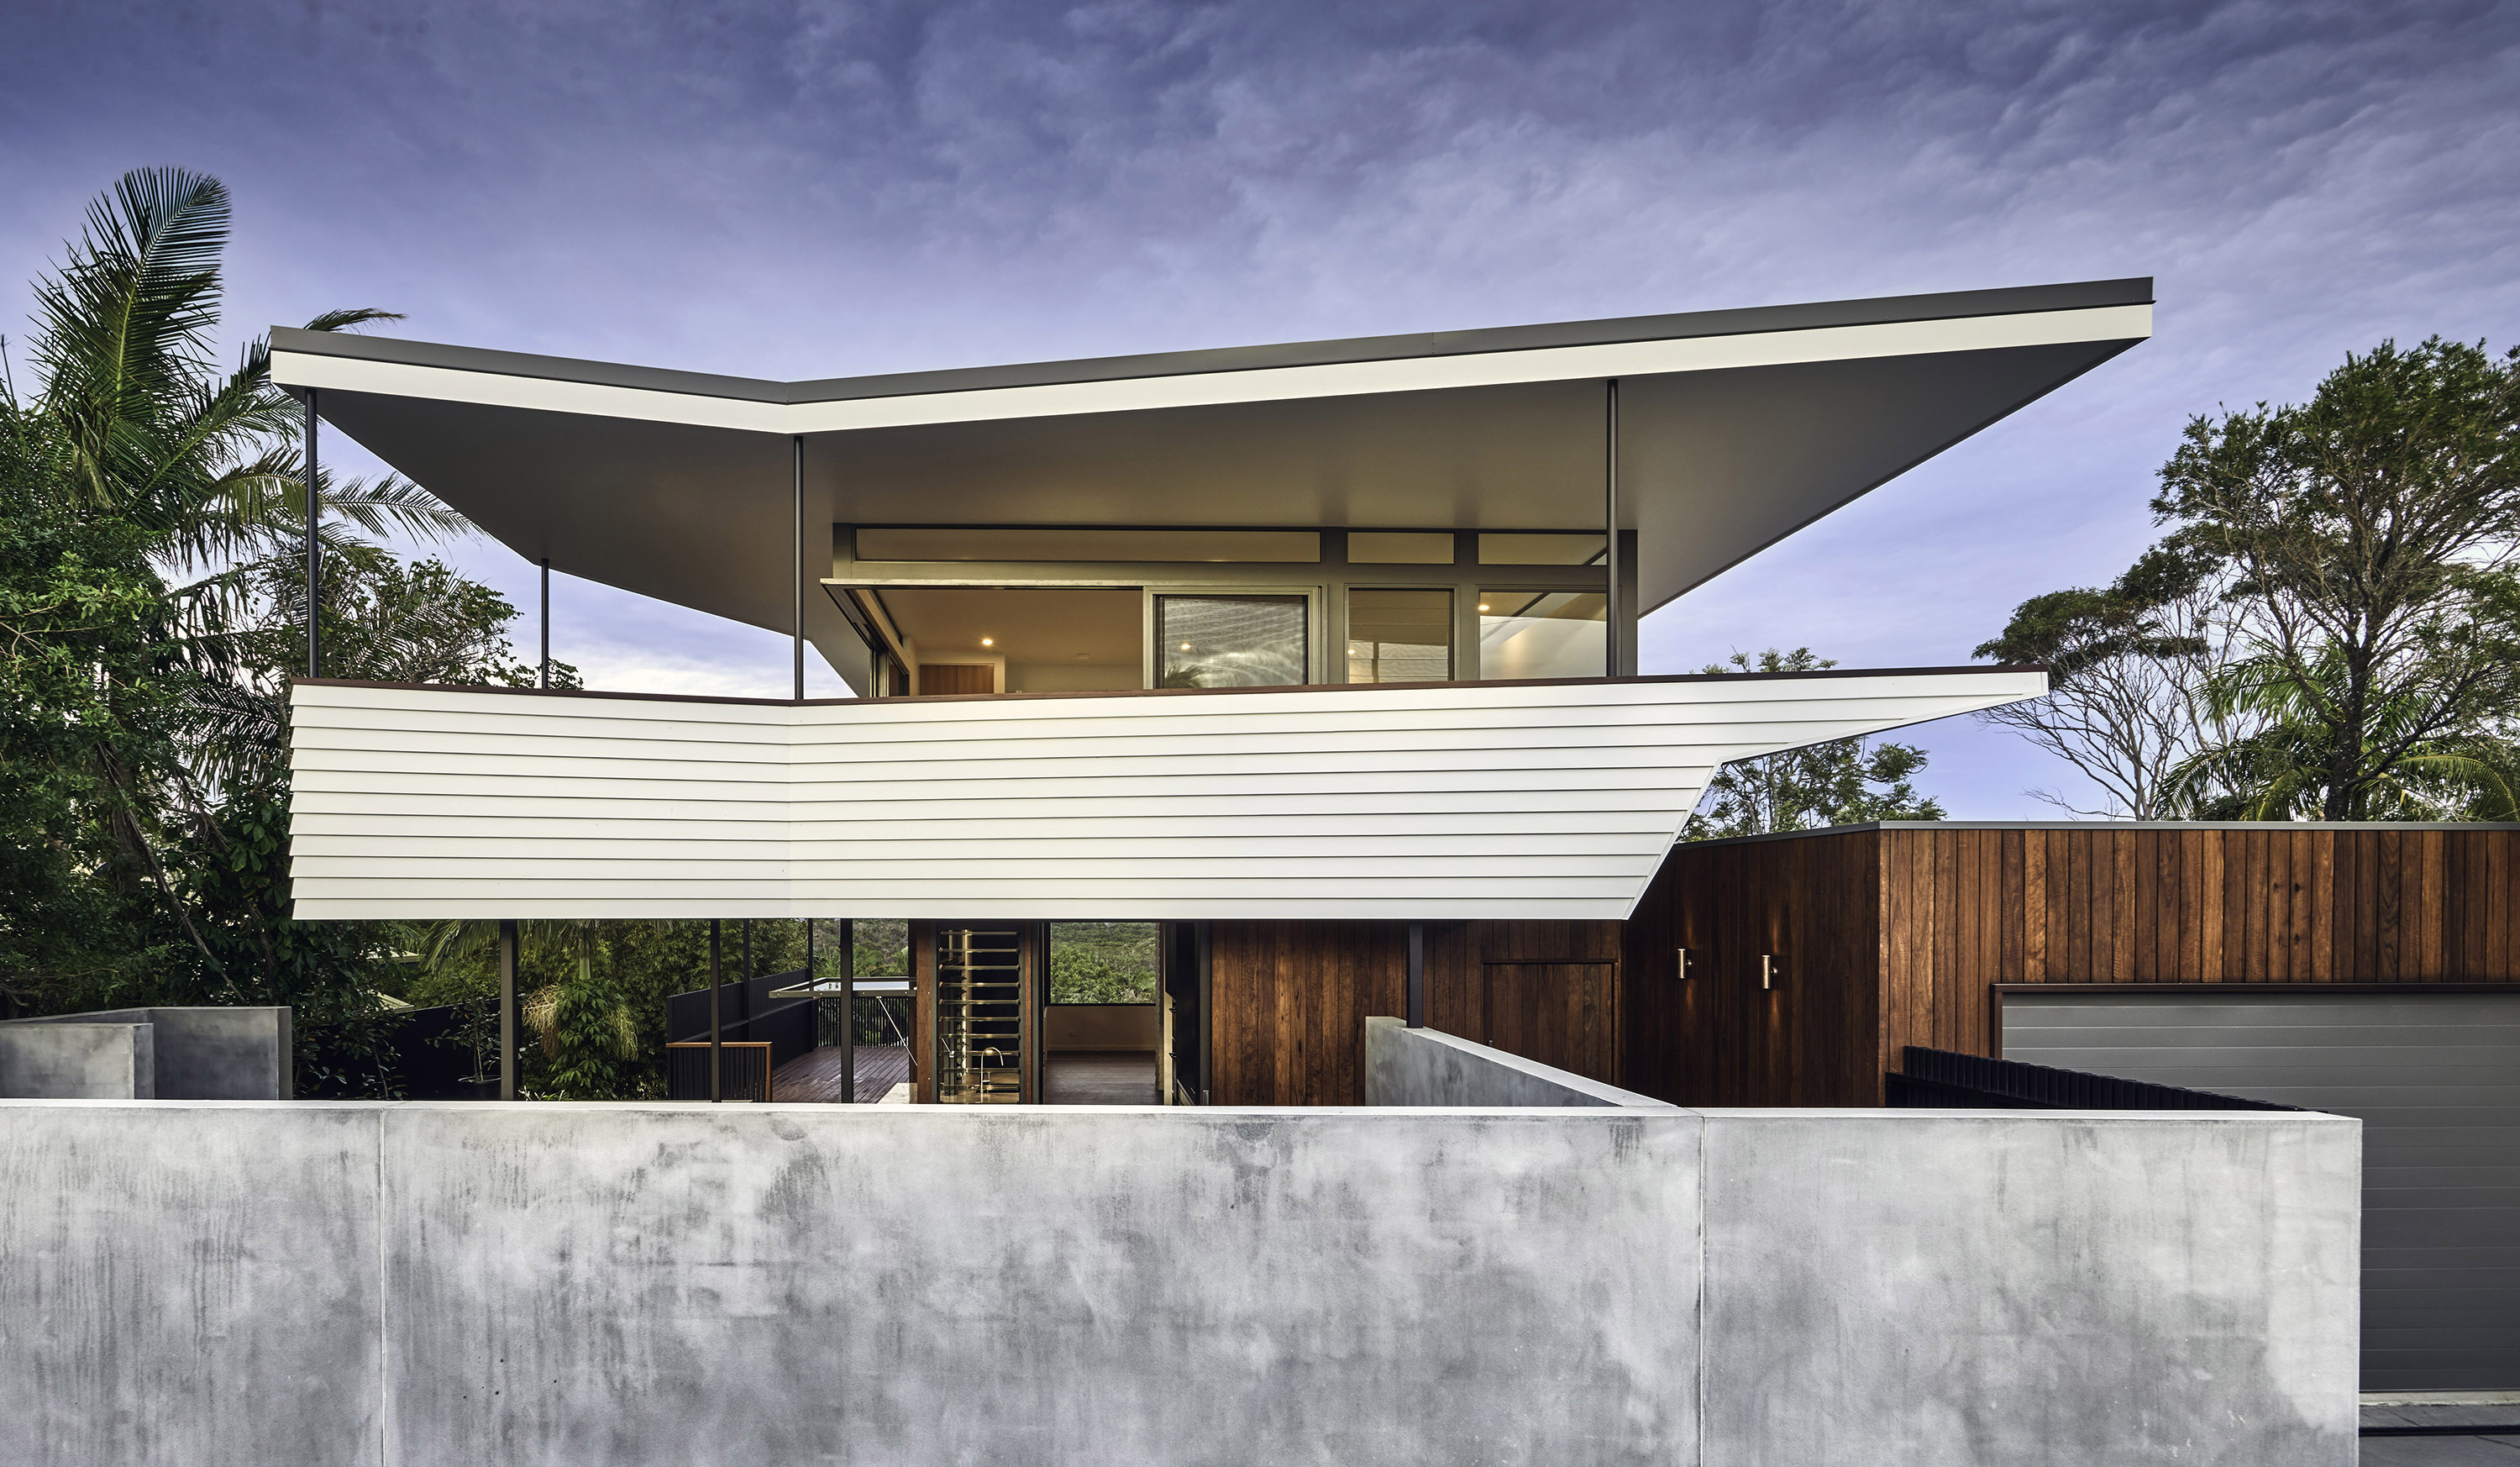 NSW Country Division Architecture Awards NSW AWARDS - Byron bay beach home designed by davis architects